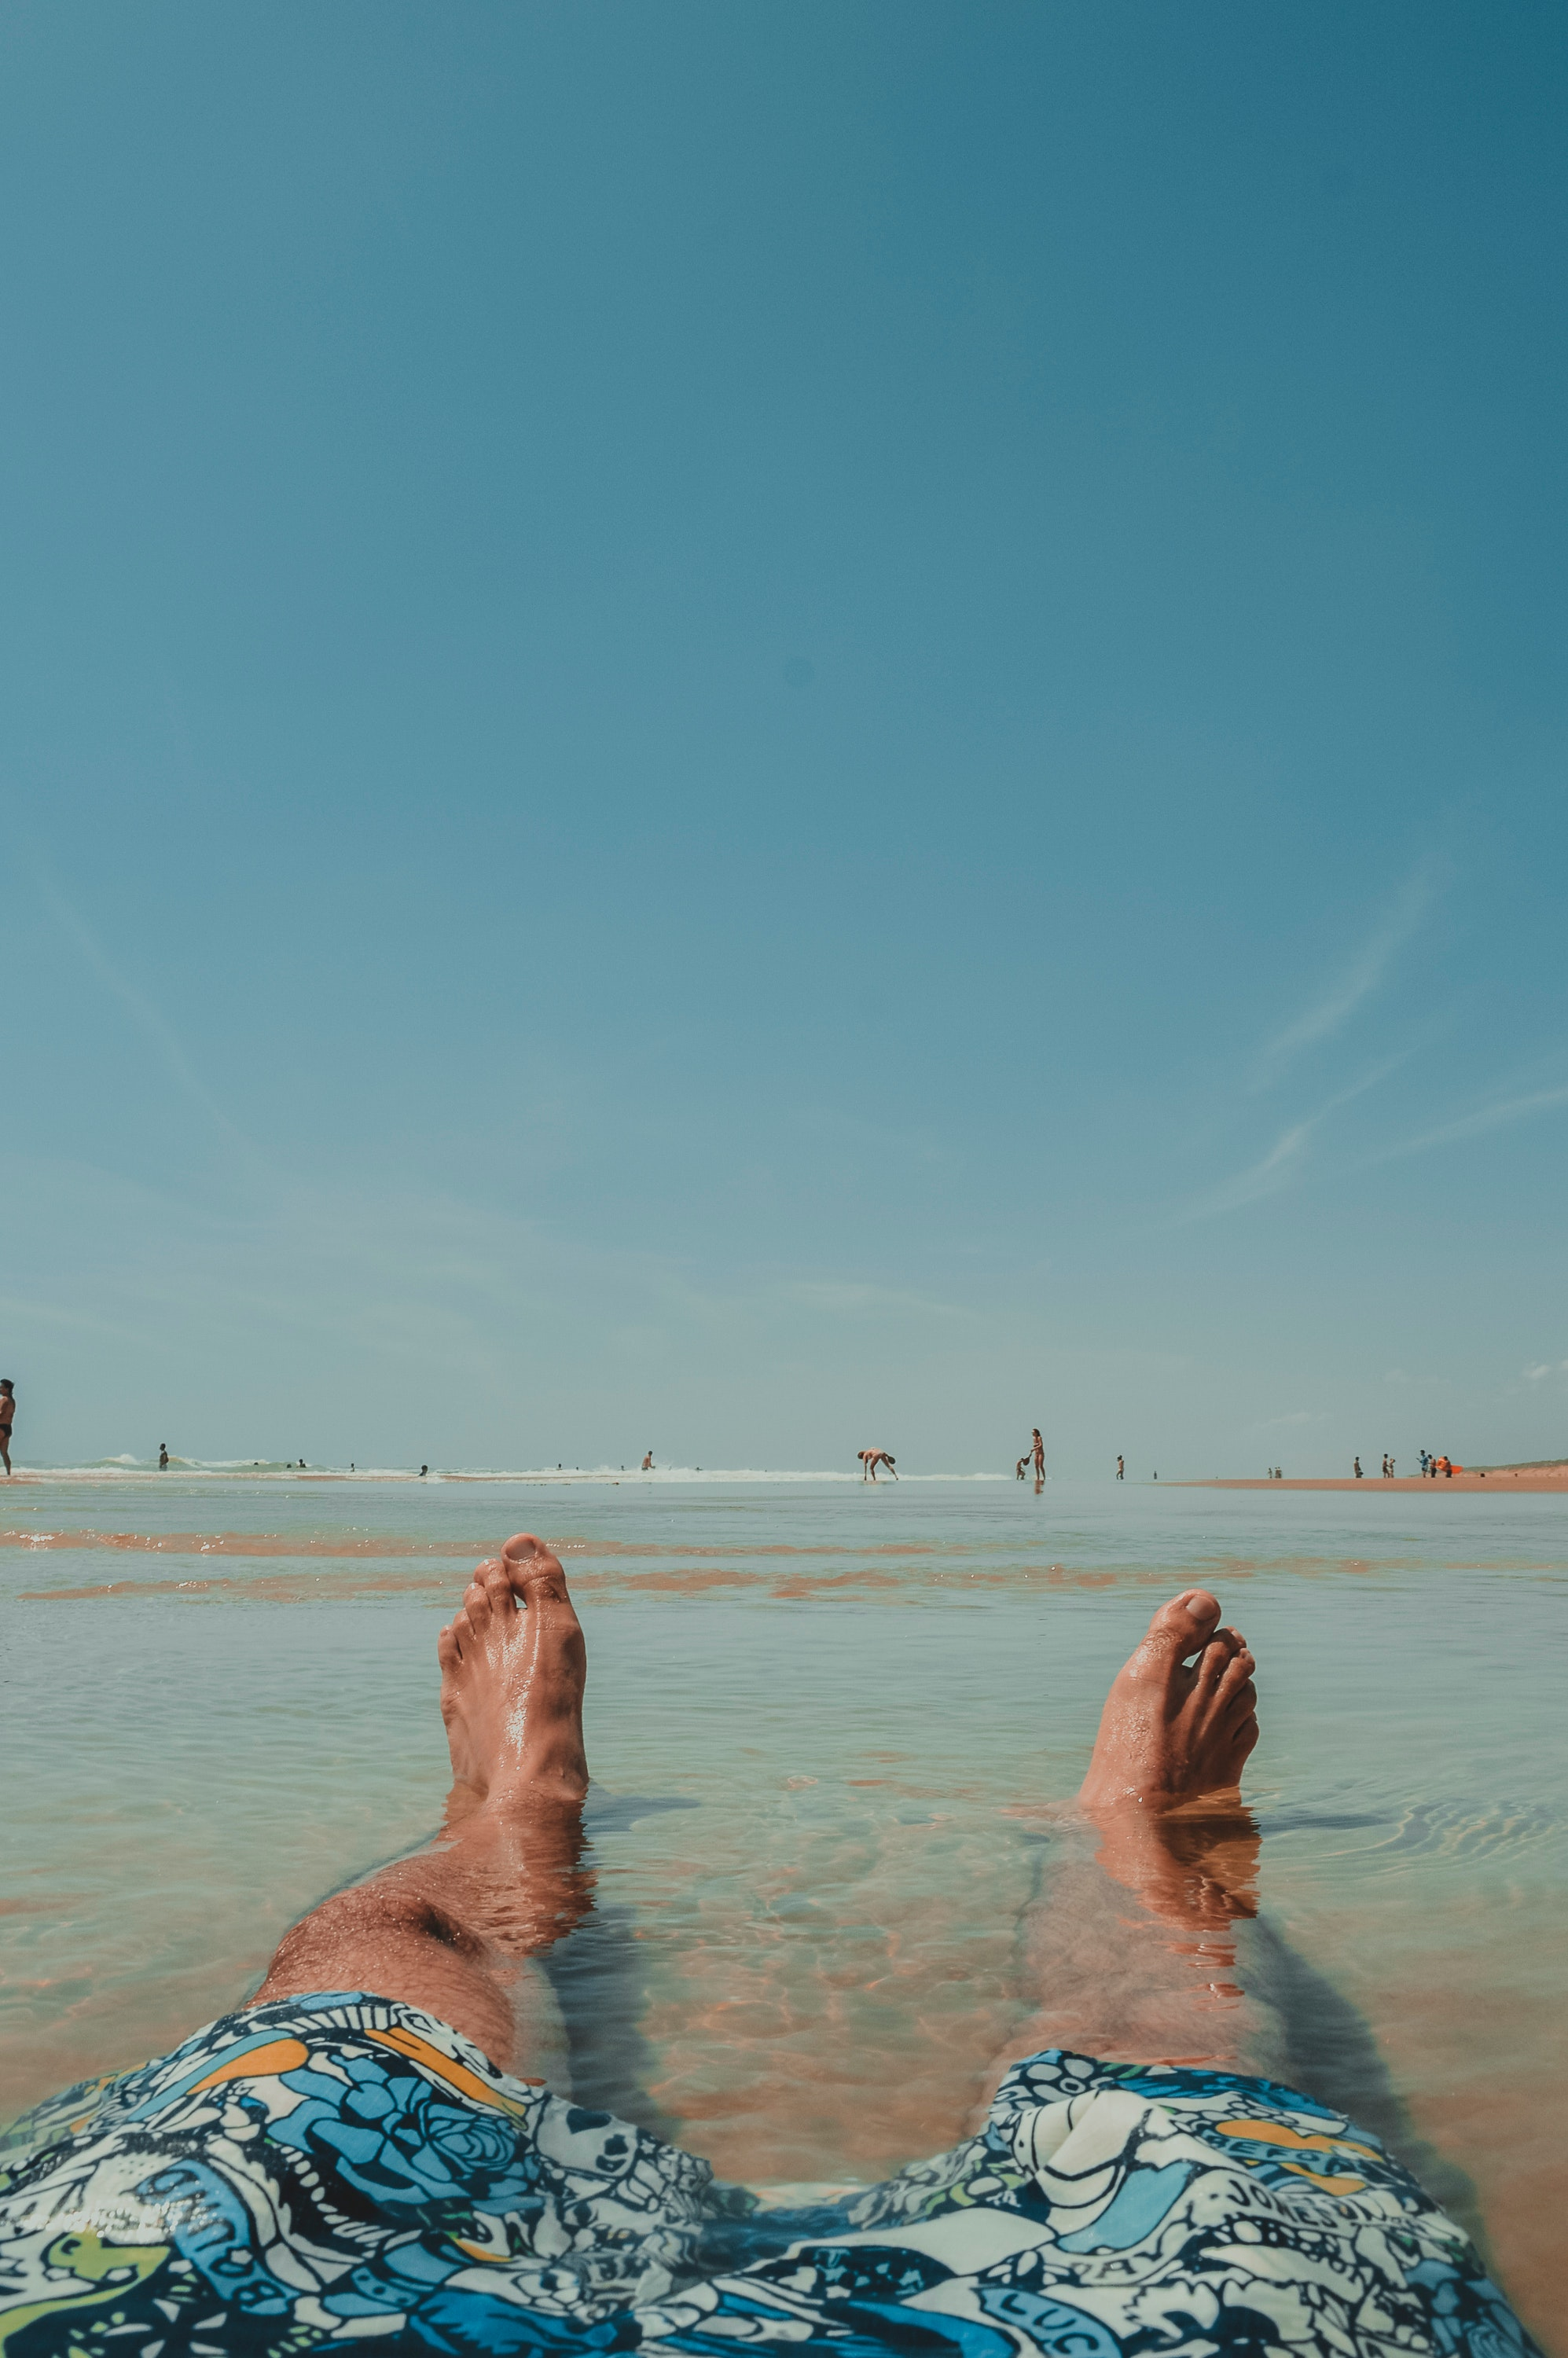 Person Wearing Doodled Boardshorts Sitting on Surface With Water, Beach, Relaxation, Wet, Water, HQ Photo